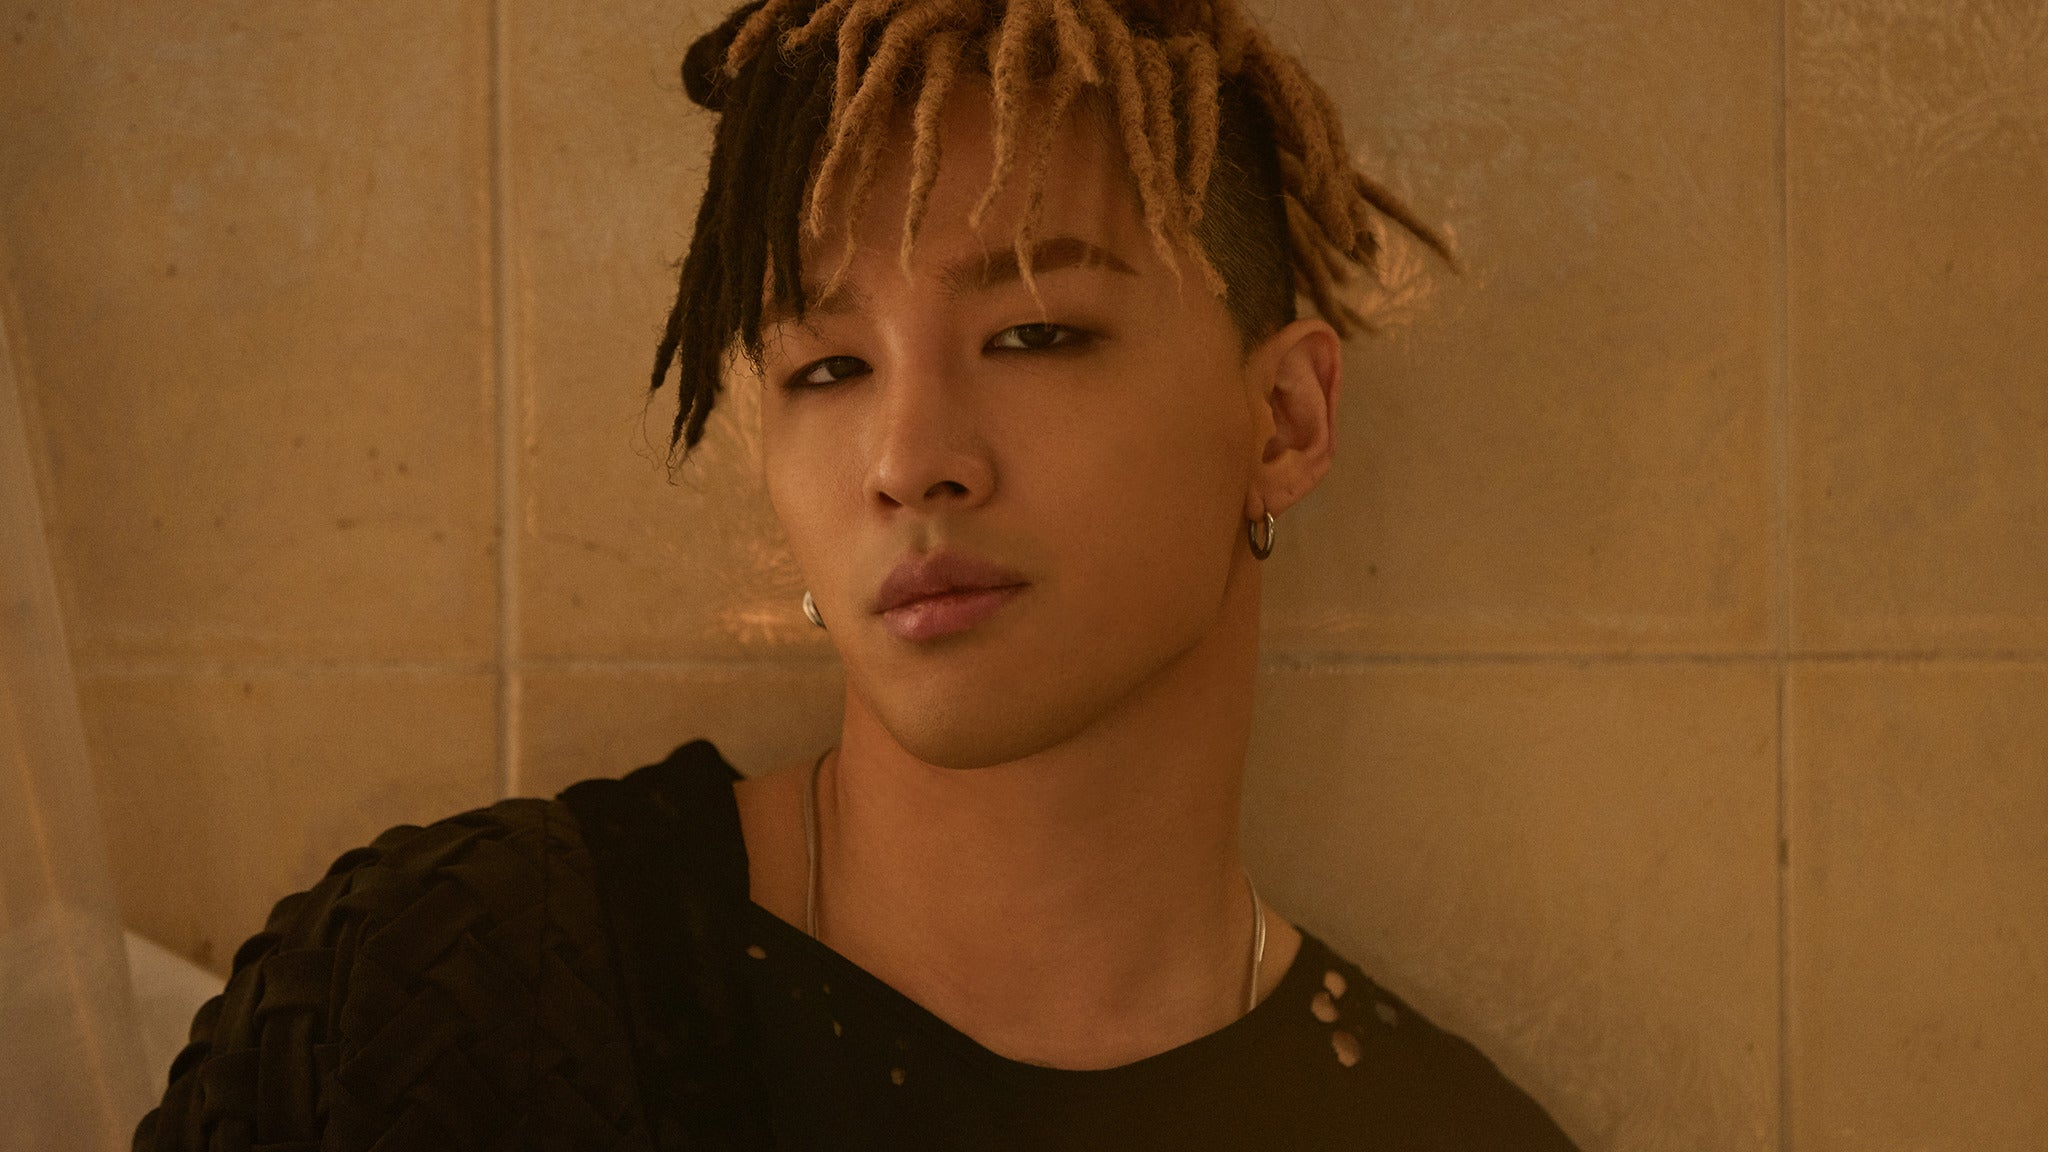 TAEYANG 2017 WORLD TOUR WHITE NIGHT  in Los Angeles - Los Angeles, CA 90010